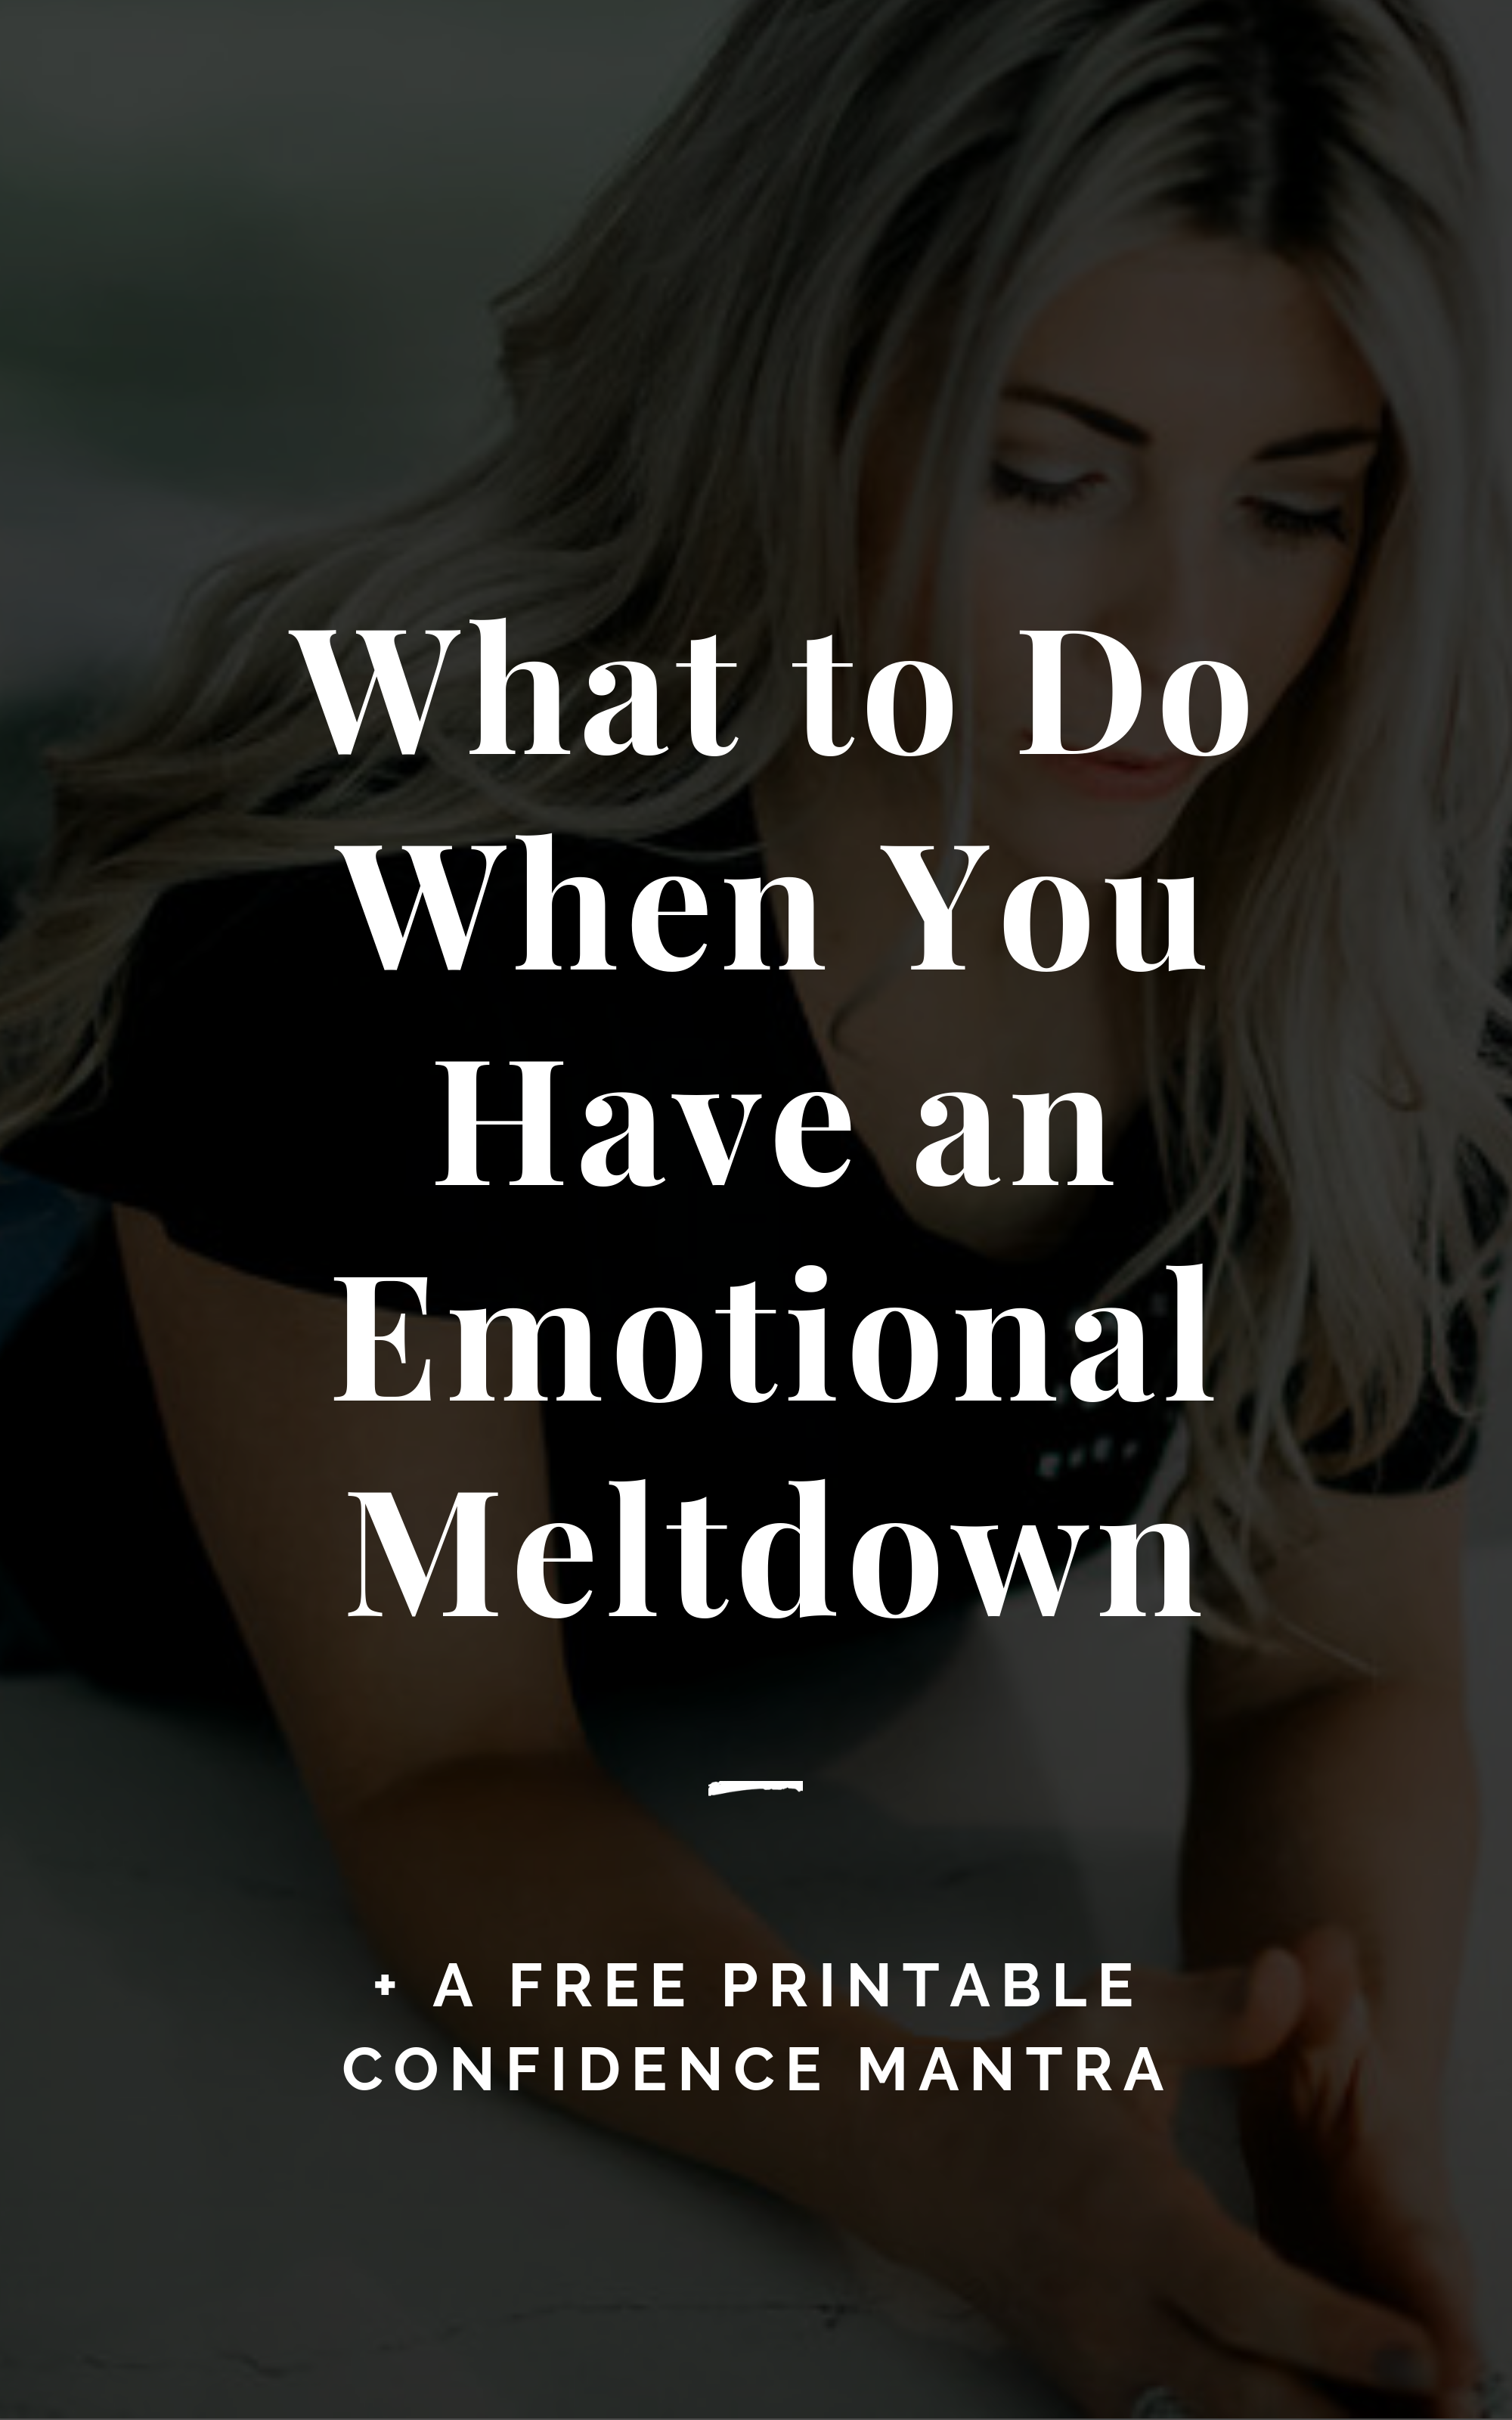 What to Do When You Have an Emotional Breakdown